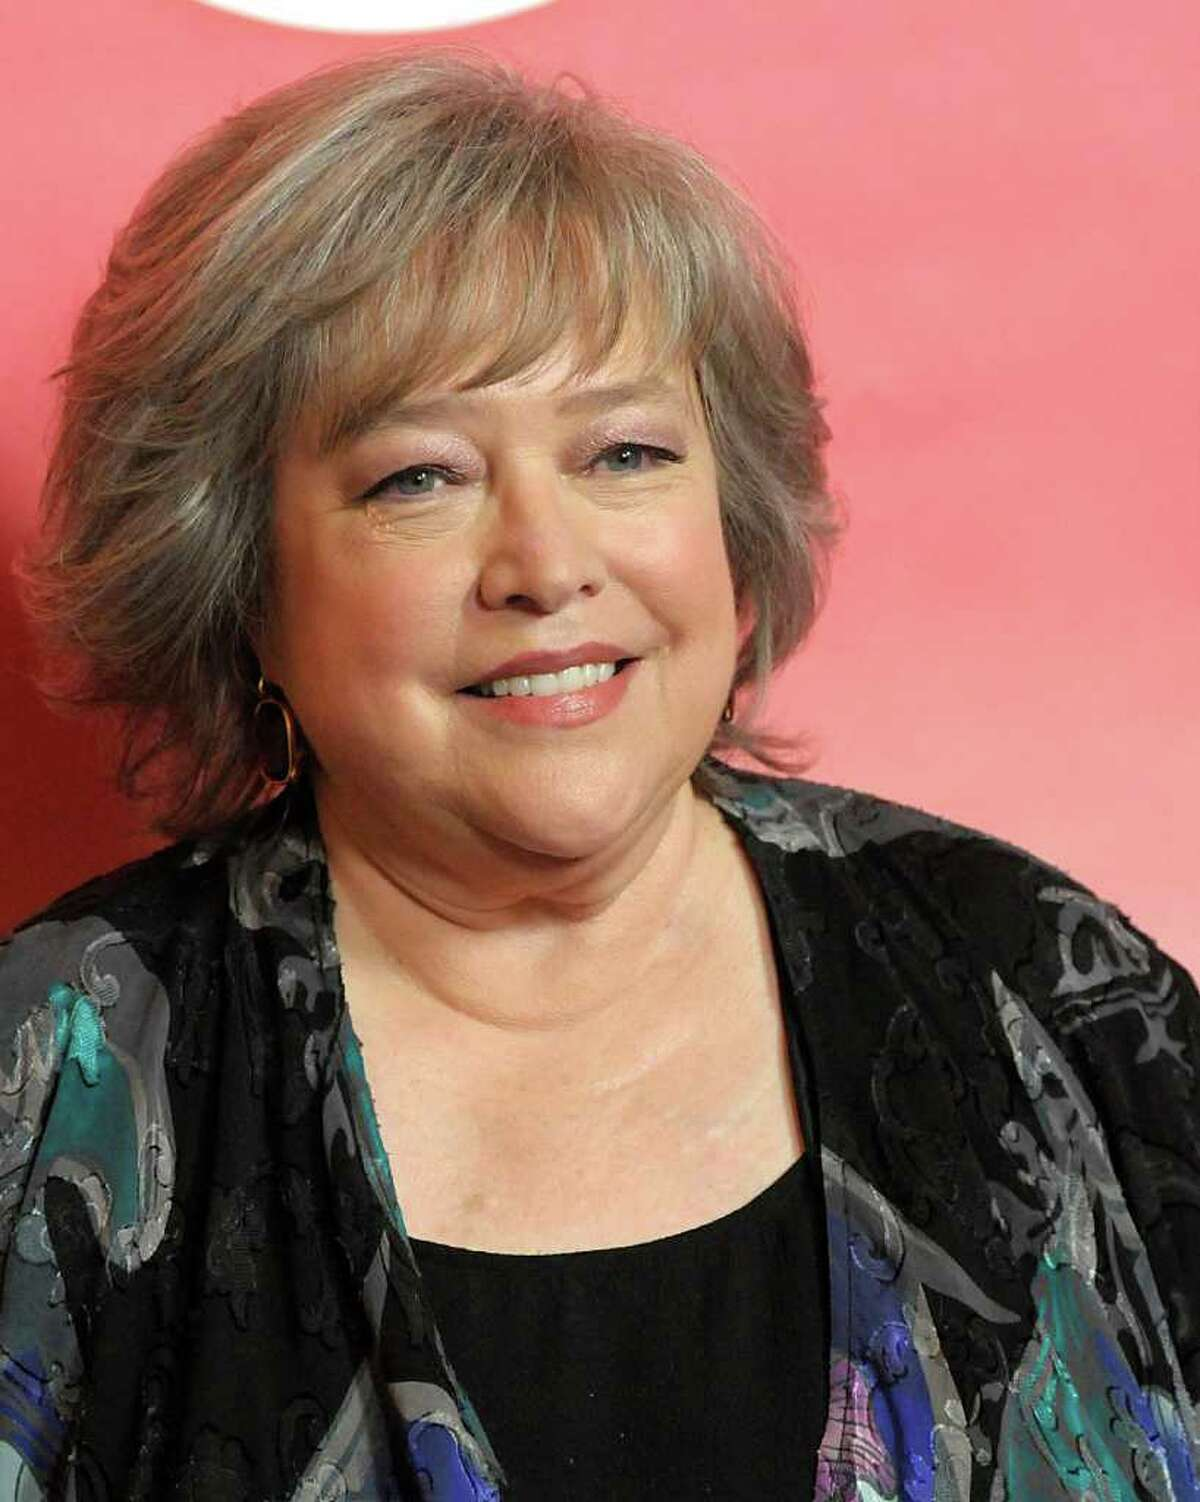 Kathy Bates is nominated for best actress in a drama series for her role in